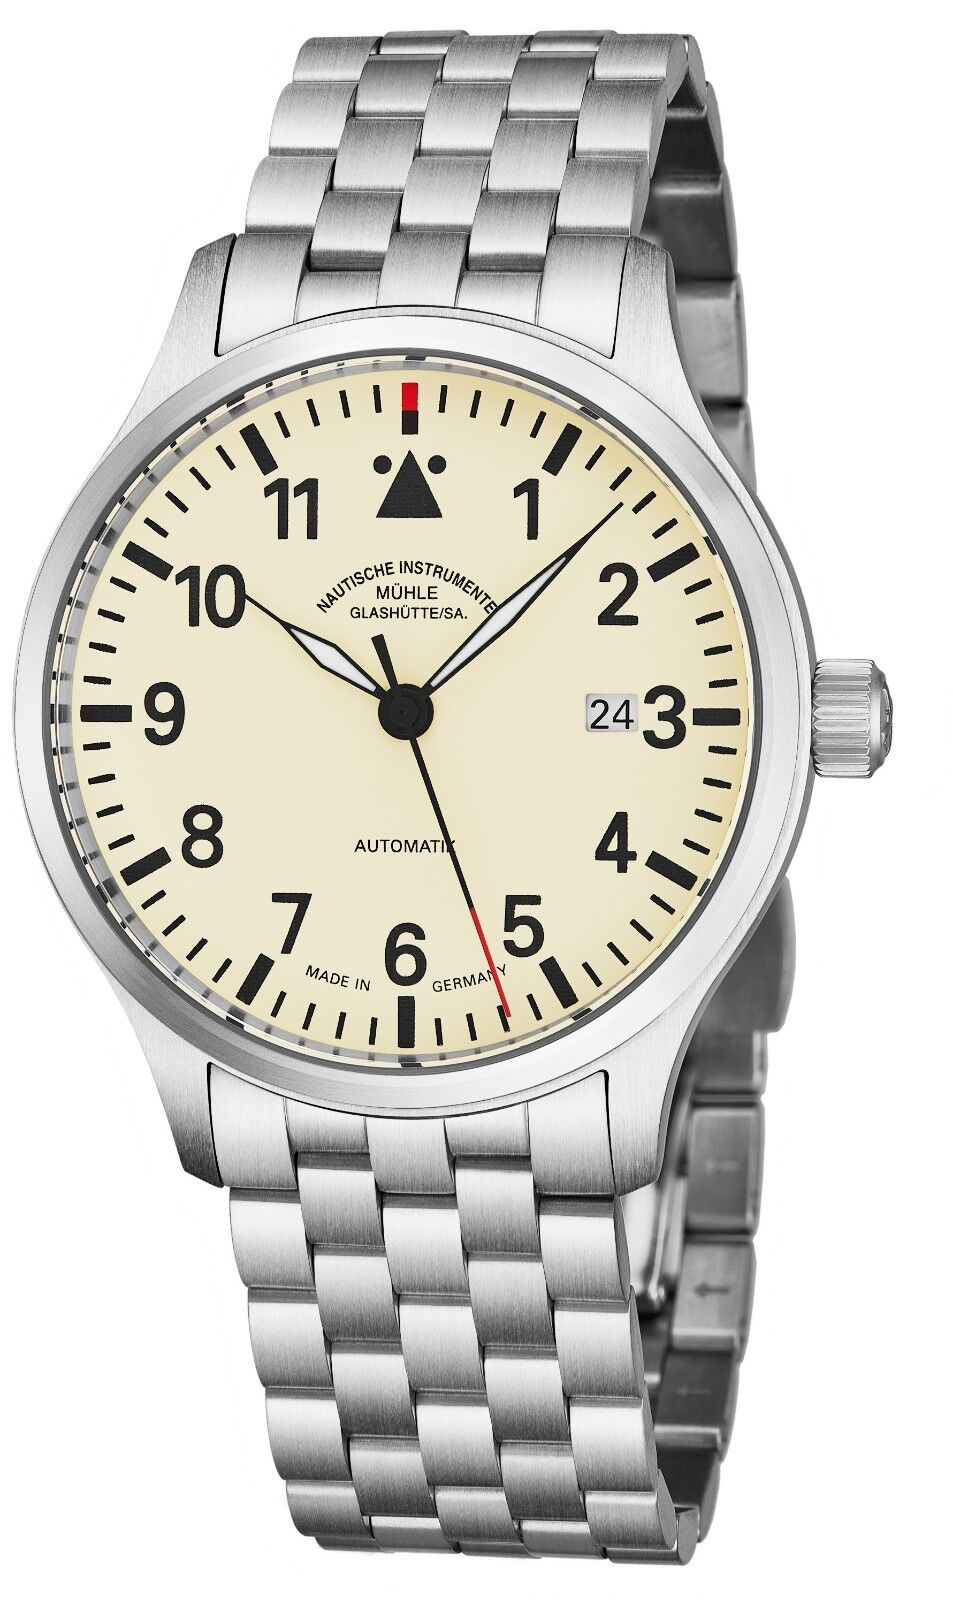 Muhle Glashutte Men's Terra Sport II Stainless Steel Automatic Watch M1-37-47-MB - watch picture 1